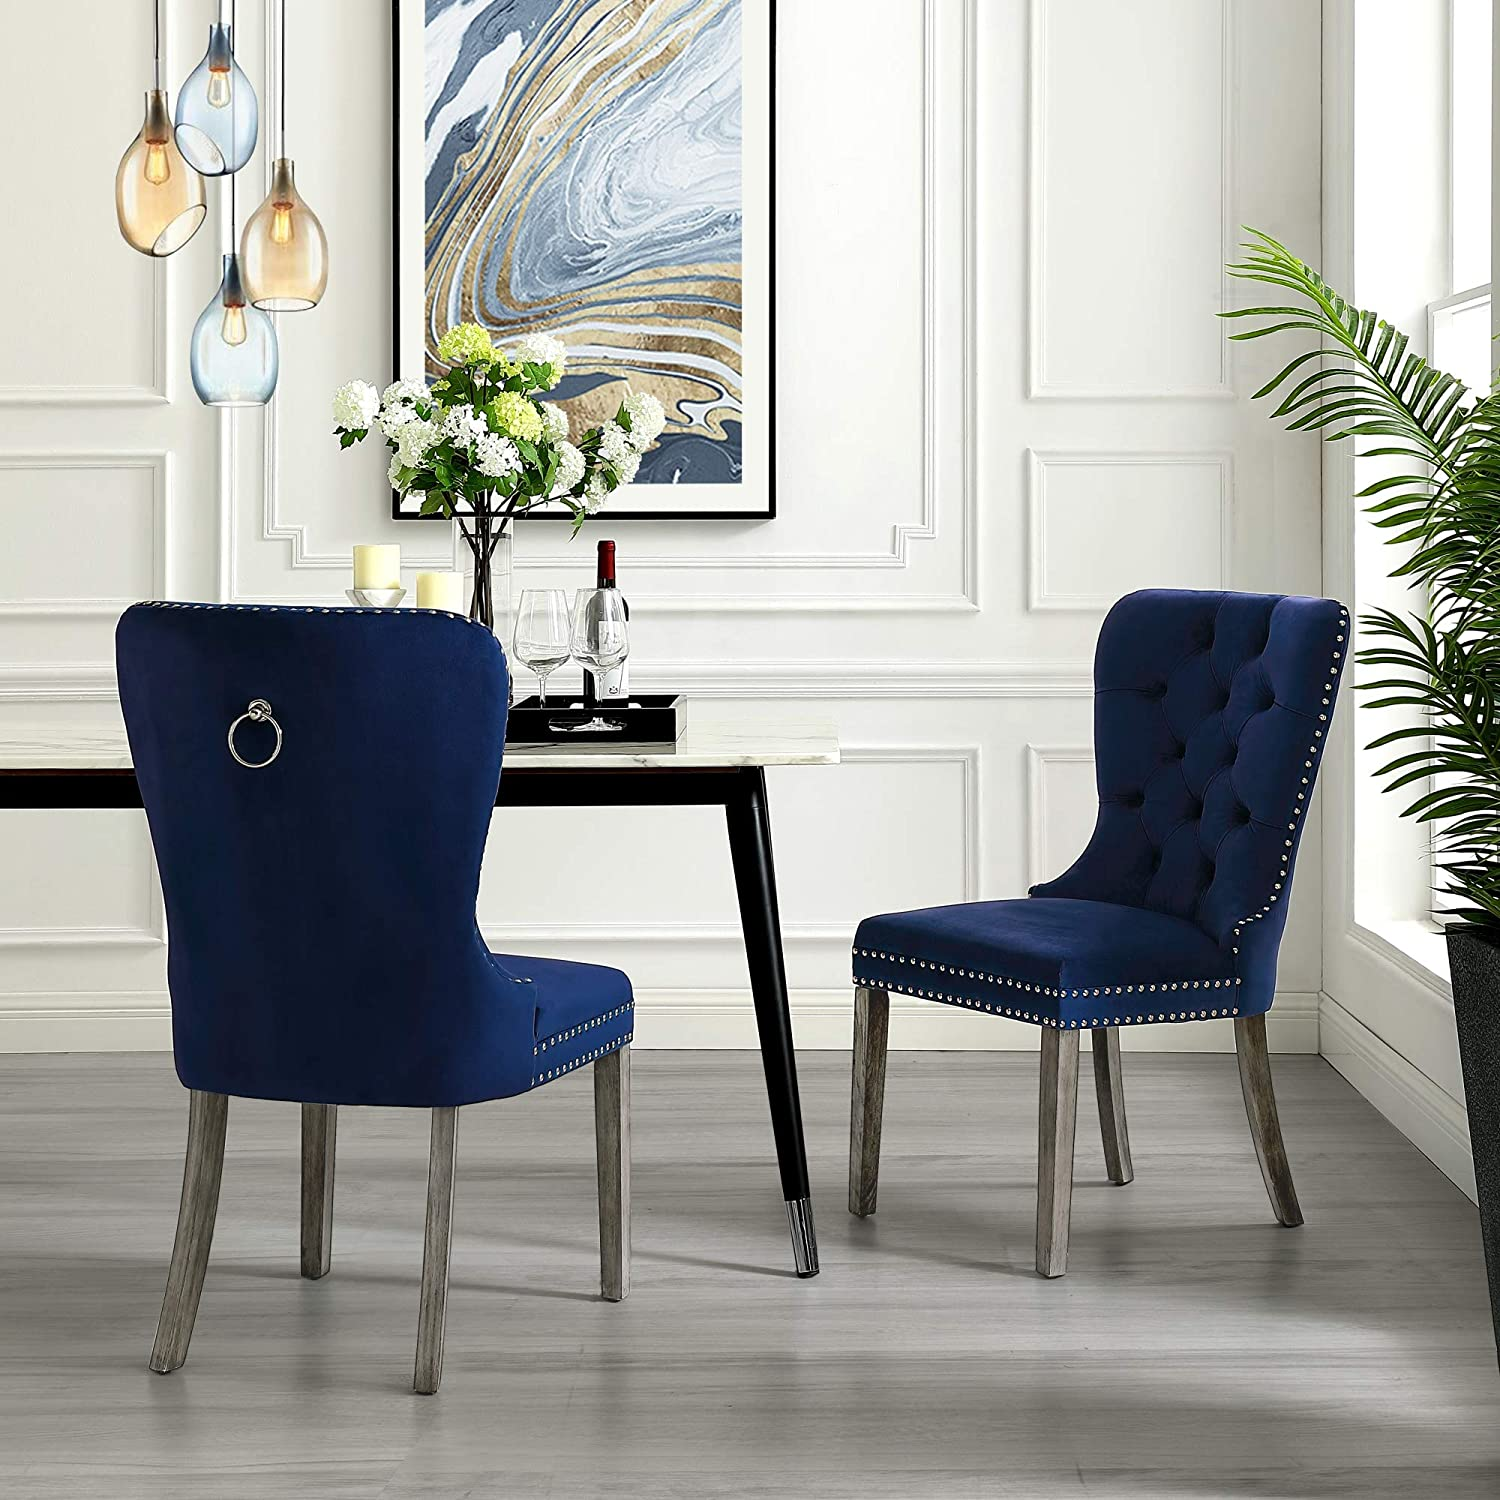 InspiredHome Navy Velvet Dining Chair - Design: Brielle | Set of 2 | Tufted | Ring Handle | Chrome Nailhead Finish